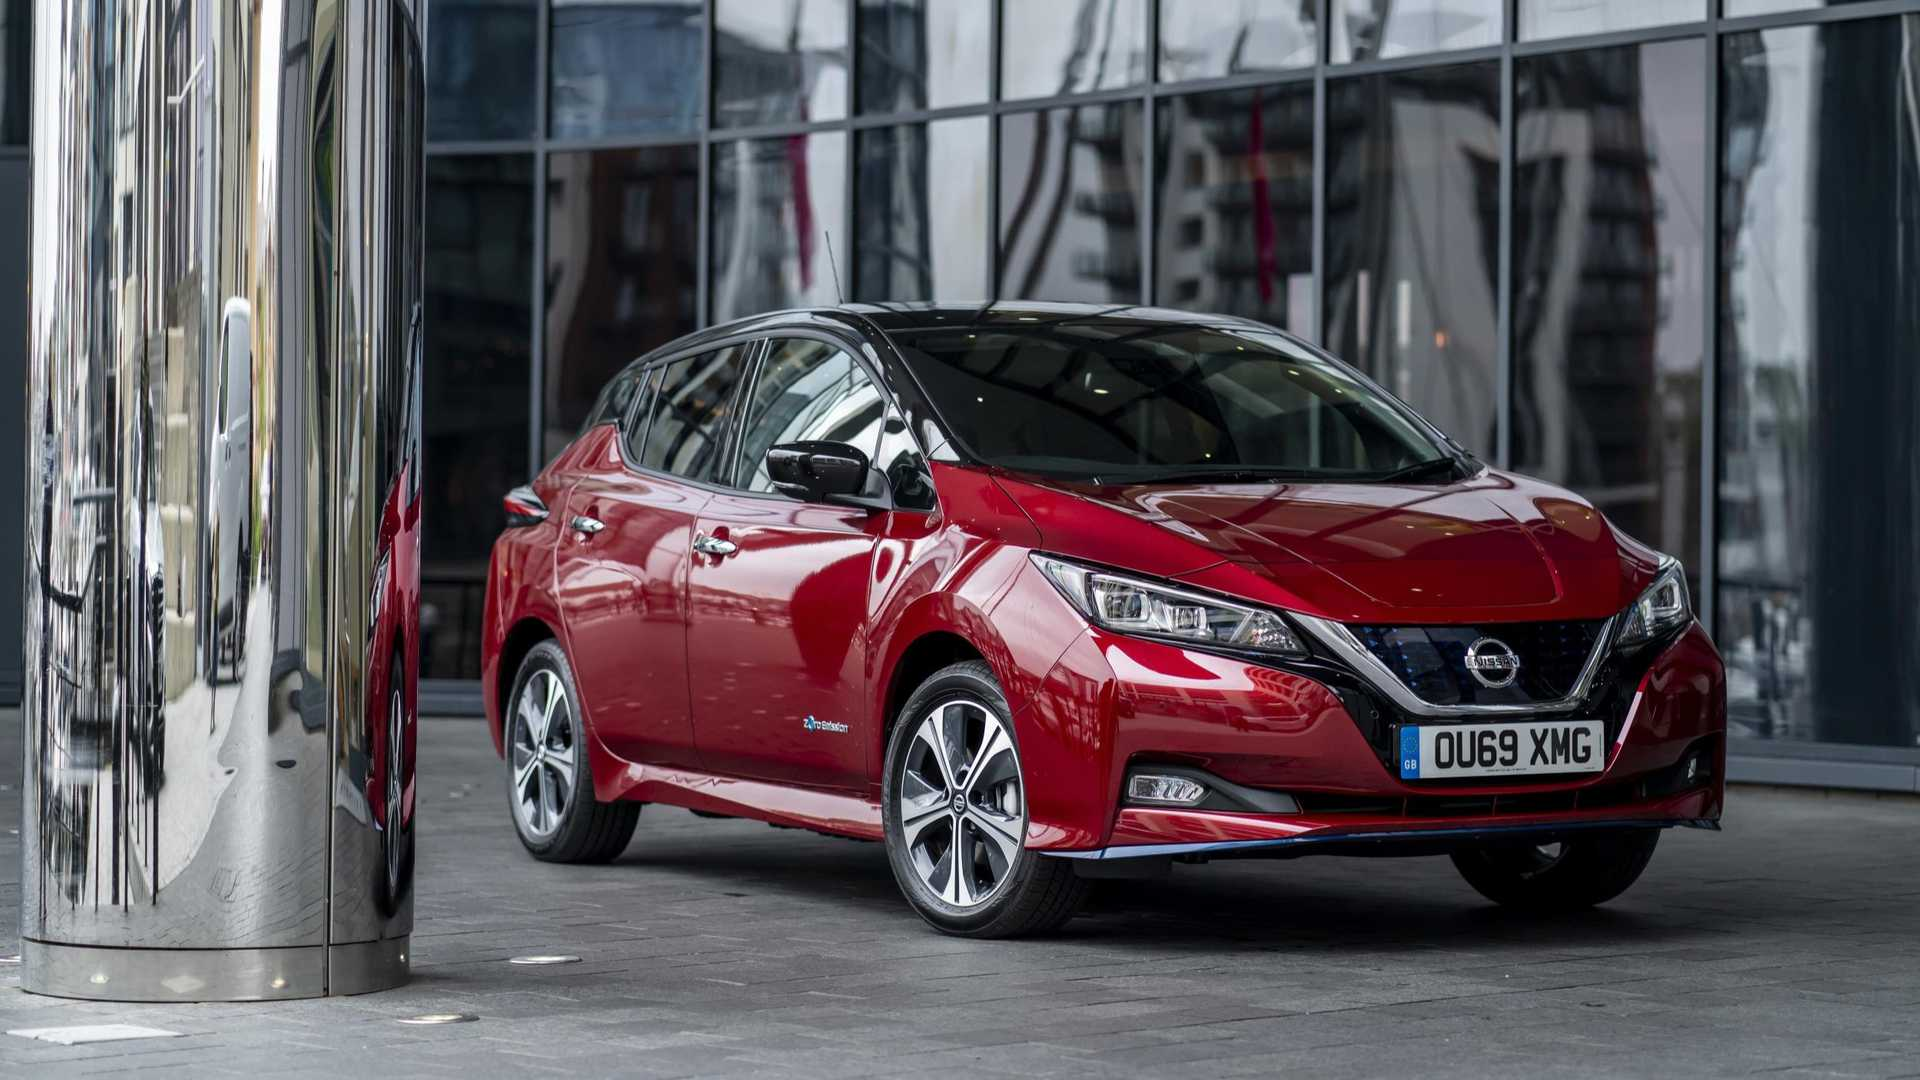 2,000 Nissan LEAFs To Be Available For Uber Drivers In London